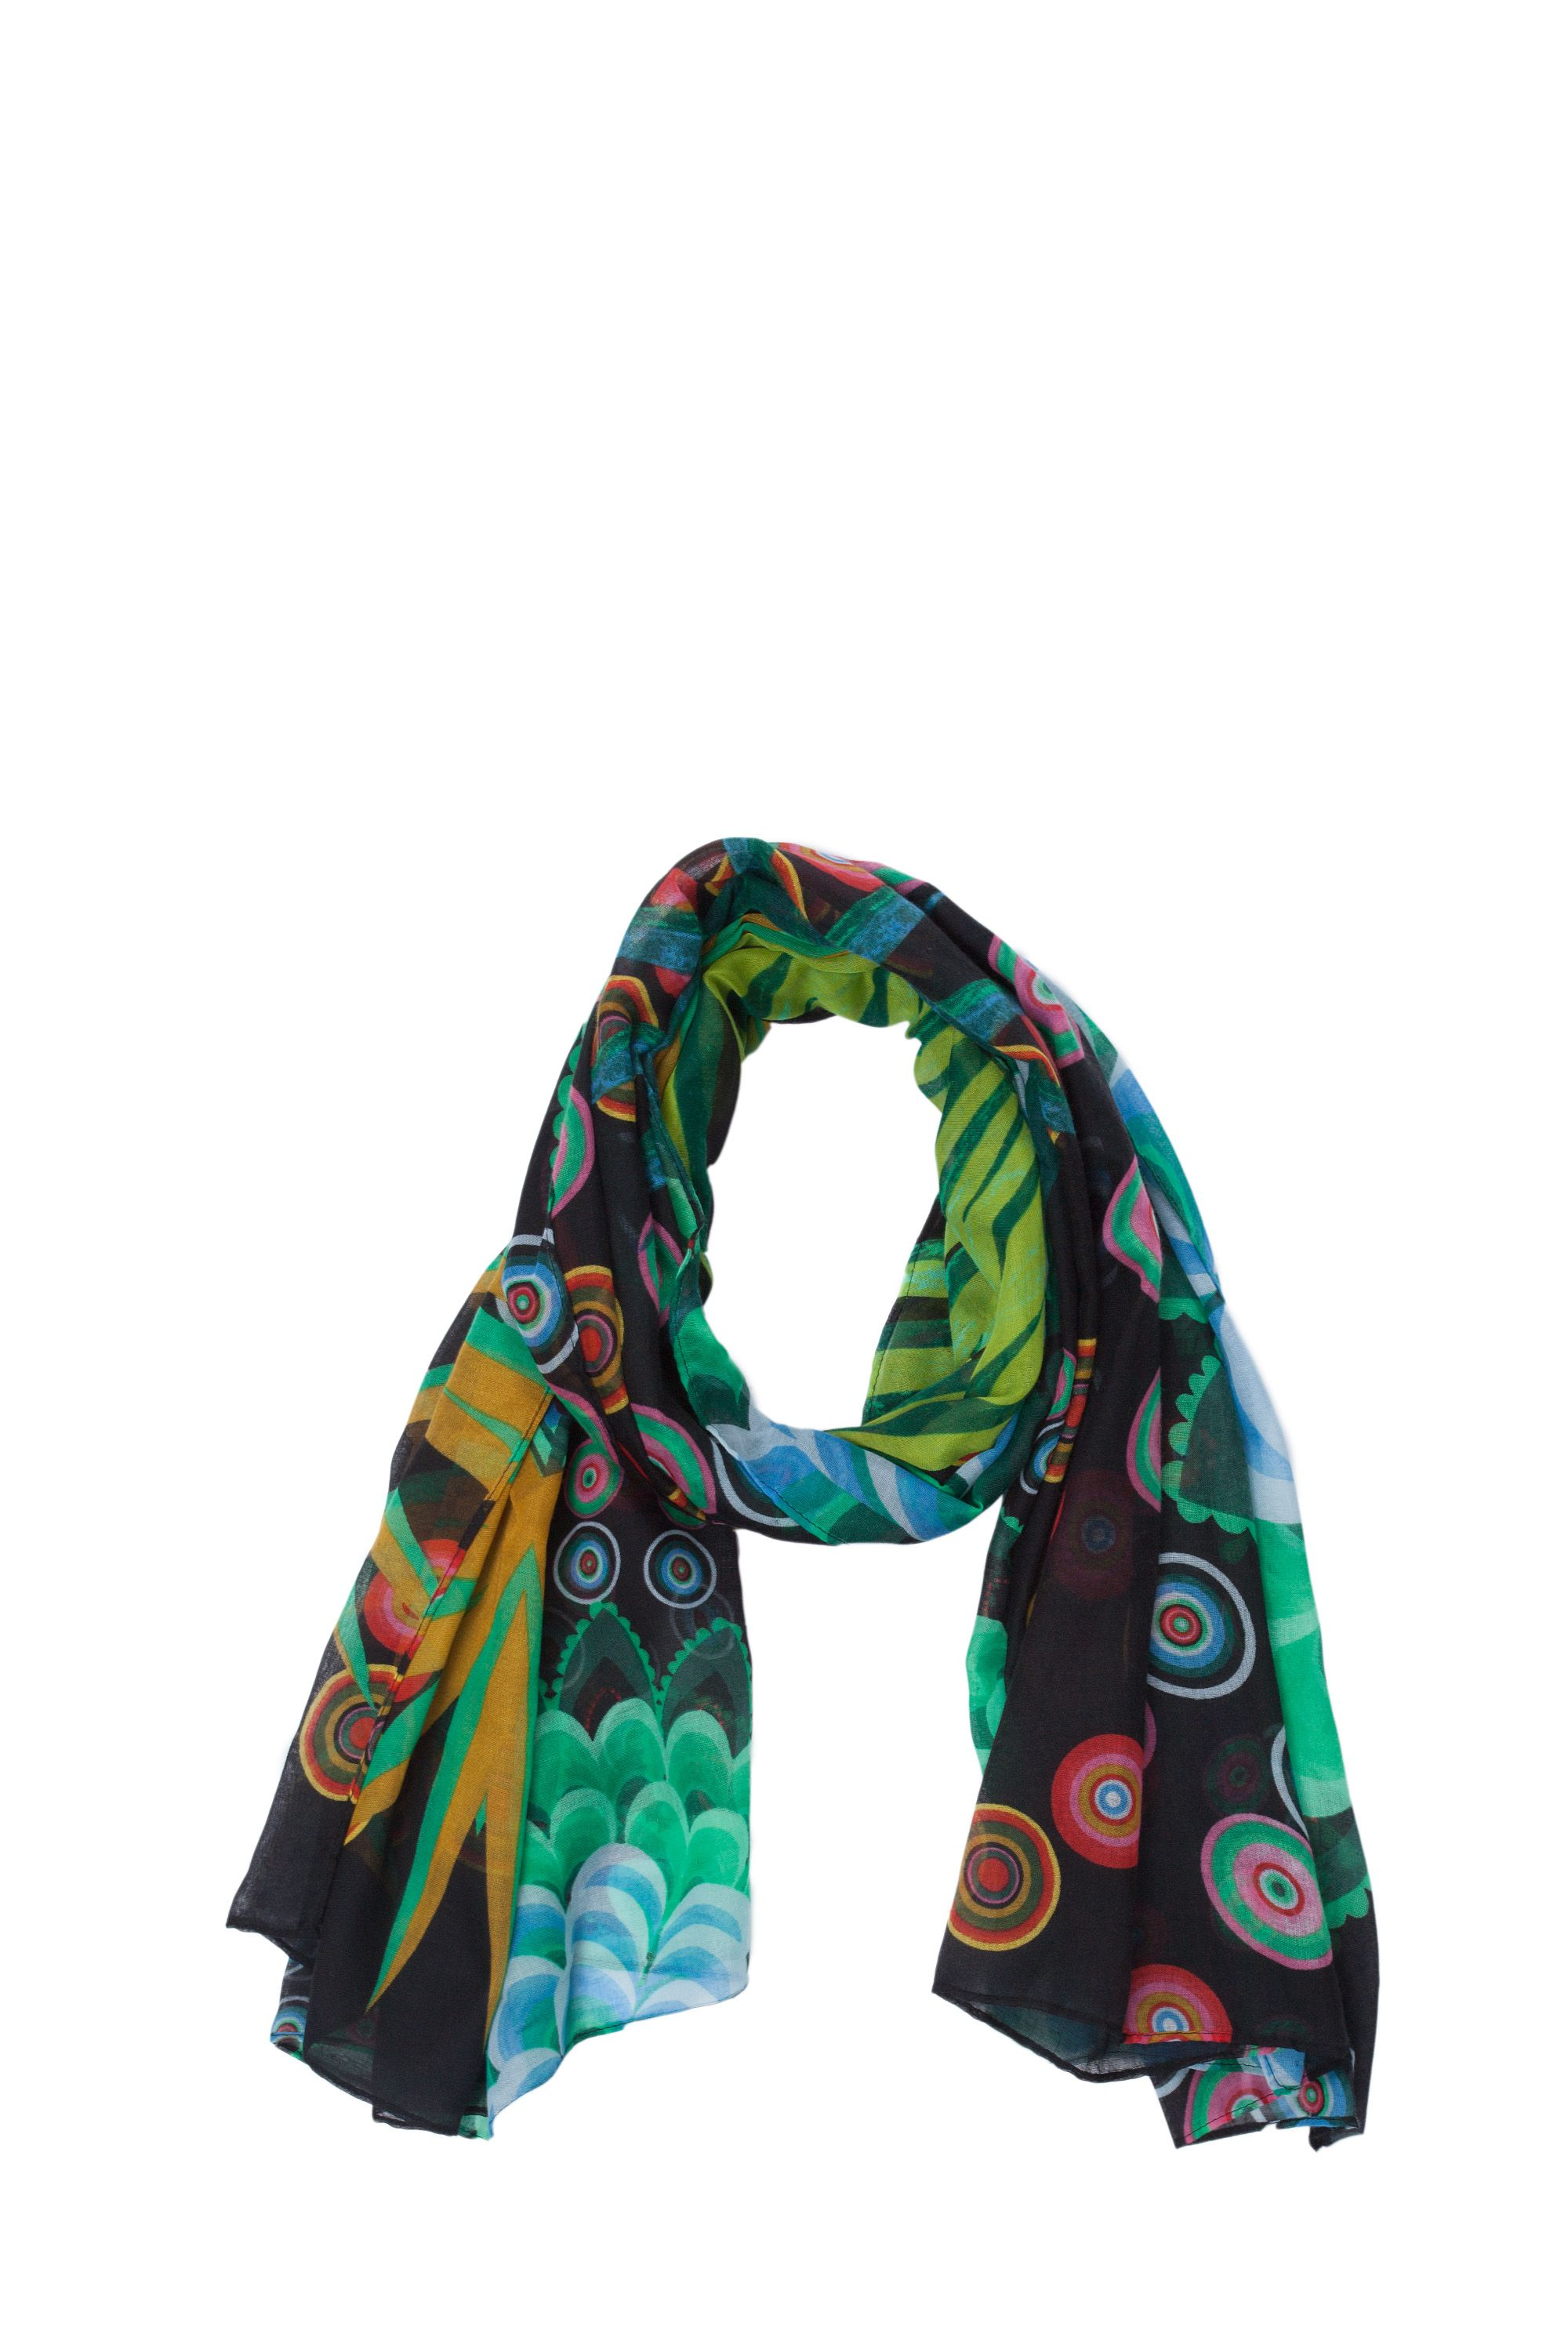 Exotical printed scarf